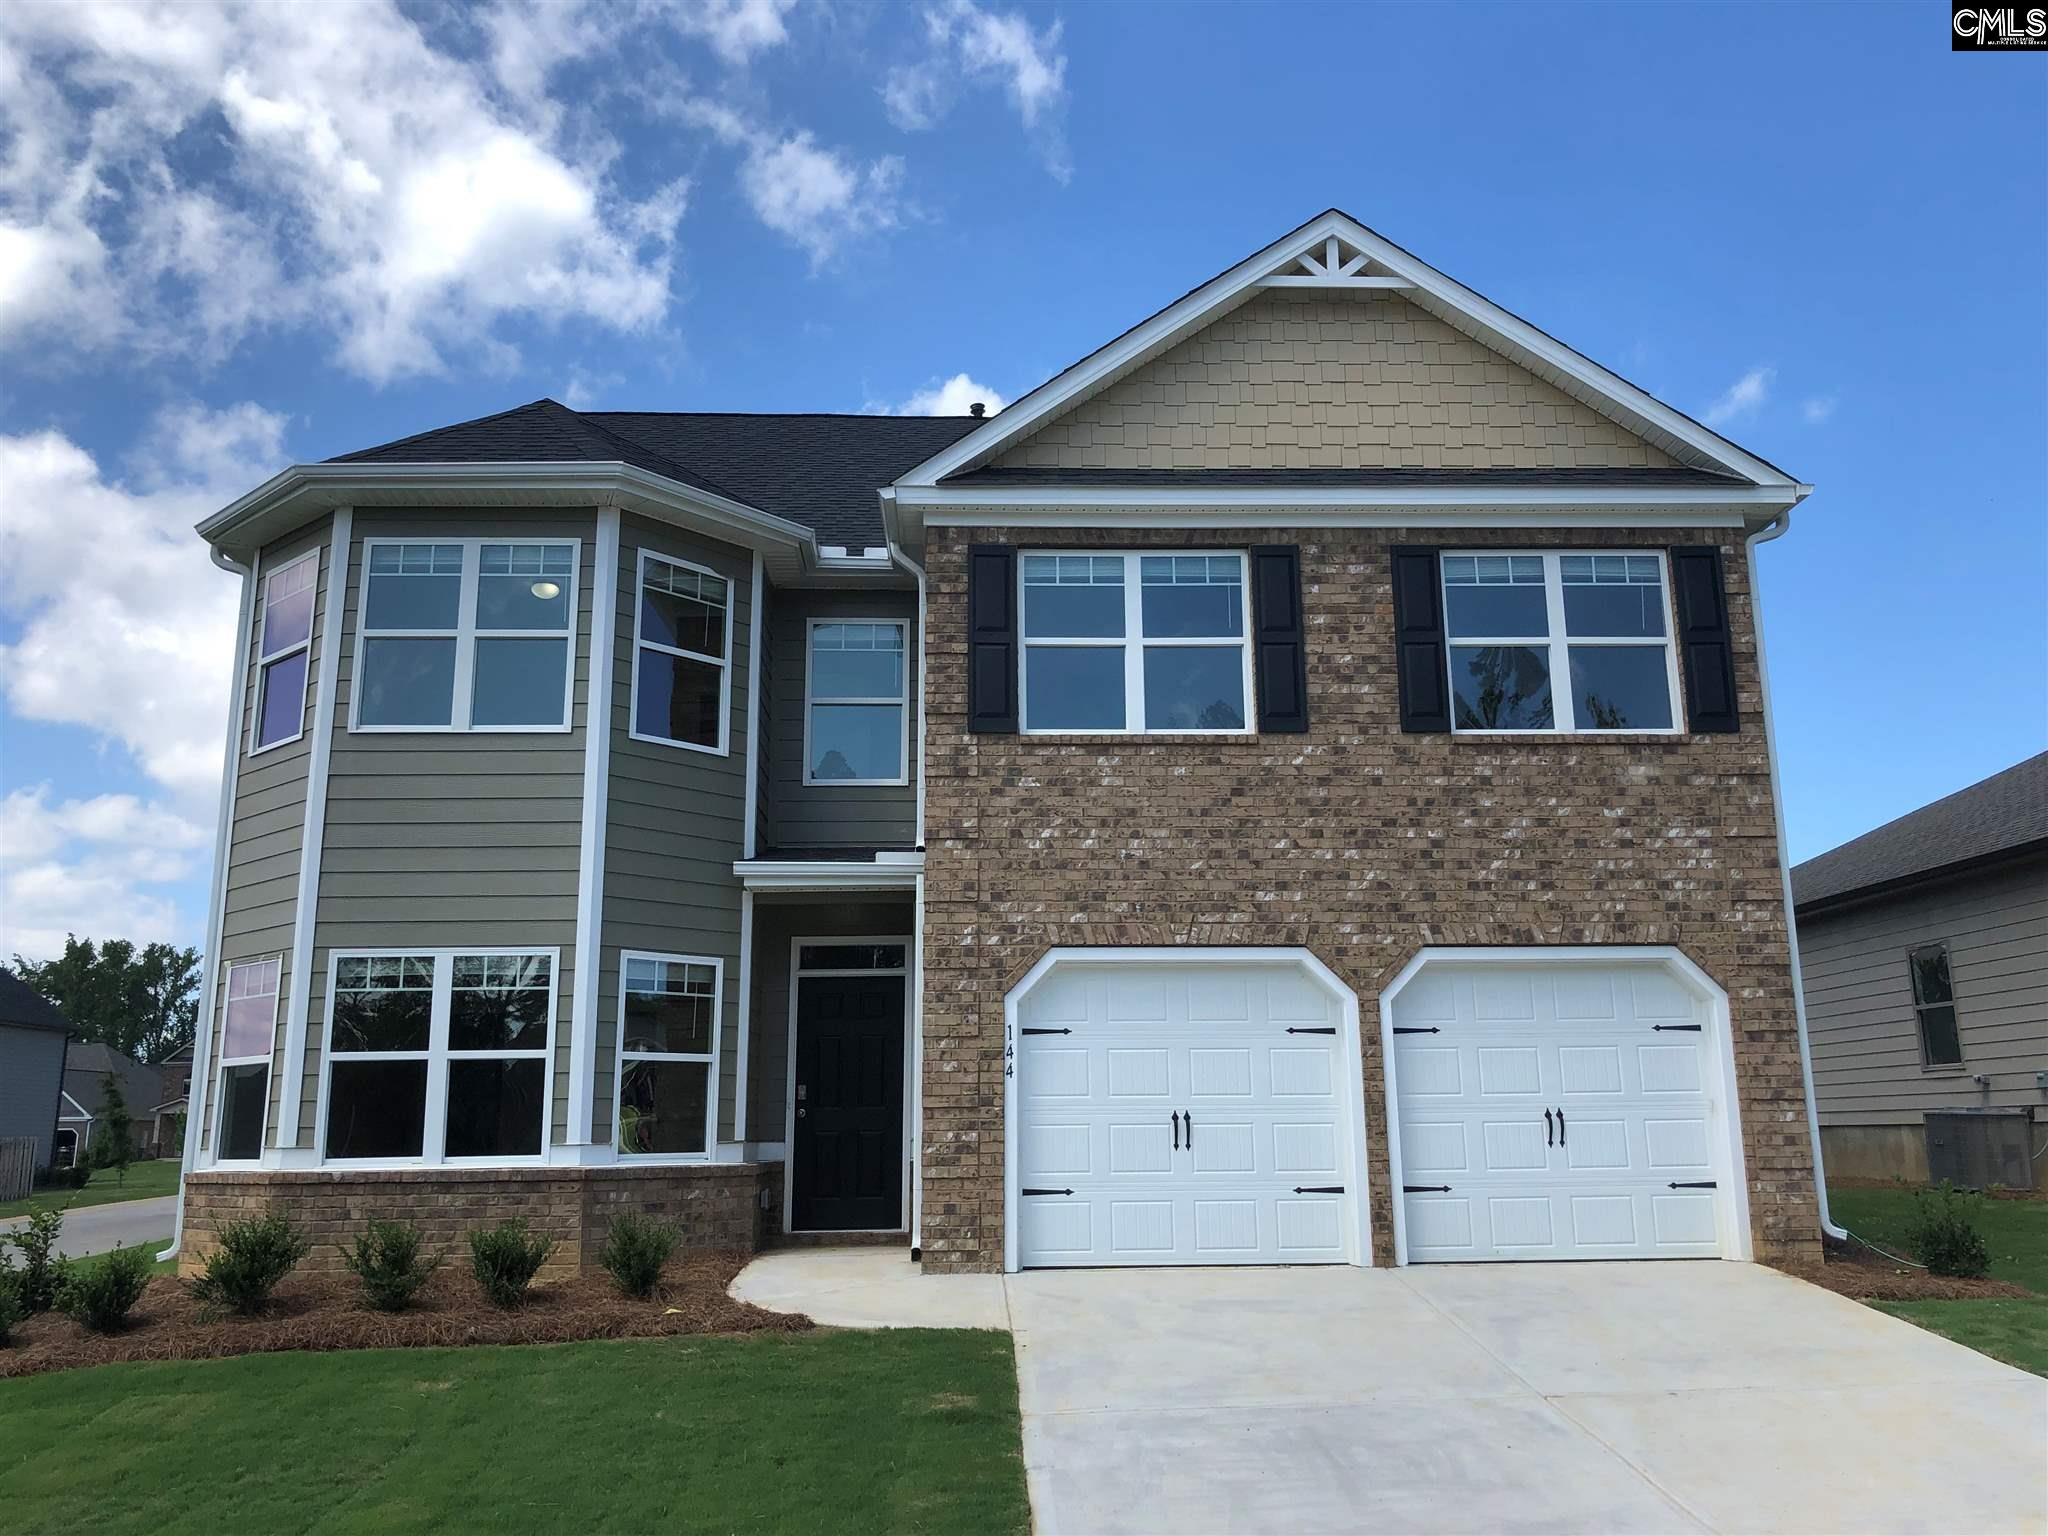 144 Village View Lexington, SC 29072